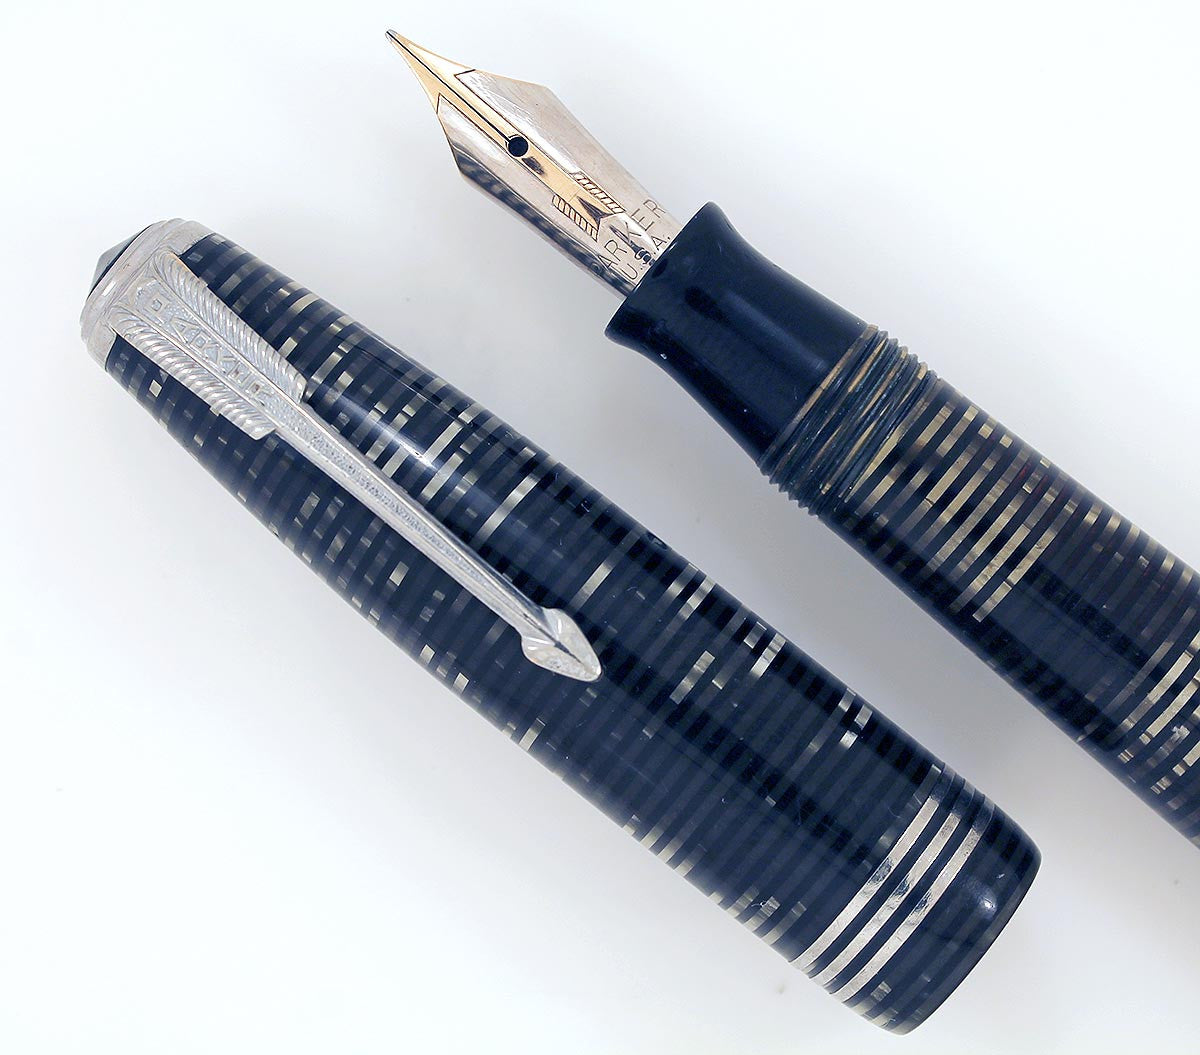 1939 PARKER GRAY PEARL VACUMATIC STREAMLINE STANDARD FOUNTAIN PEN W/ STAR CLIP OFFERED BY ANTIQUE DIGGER